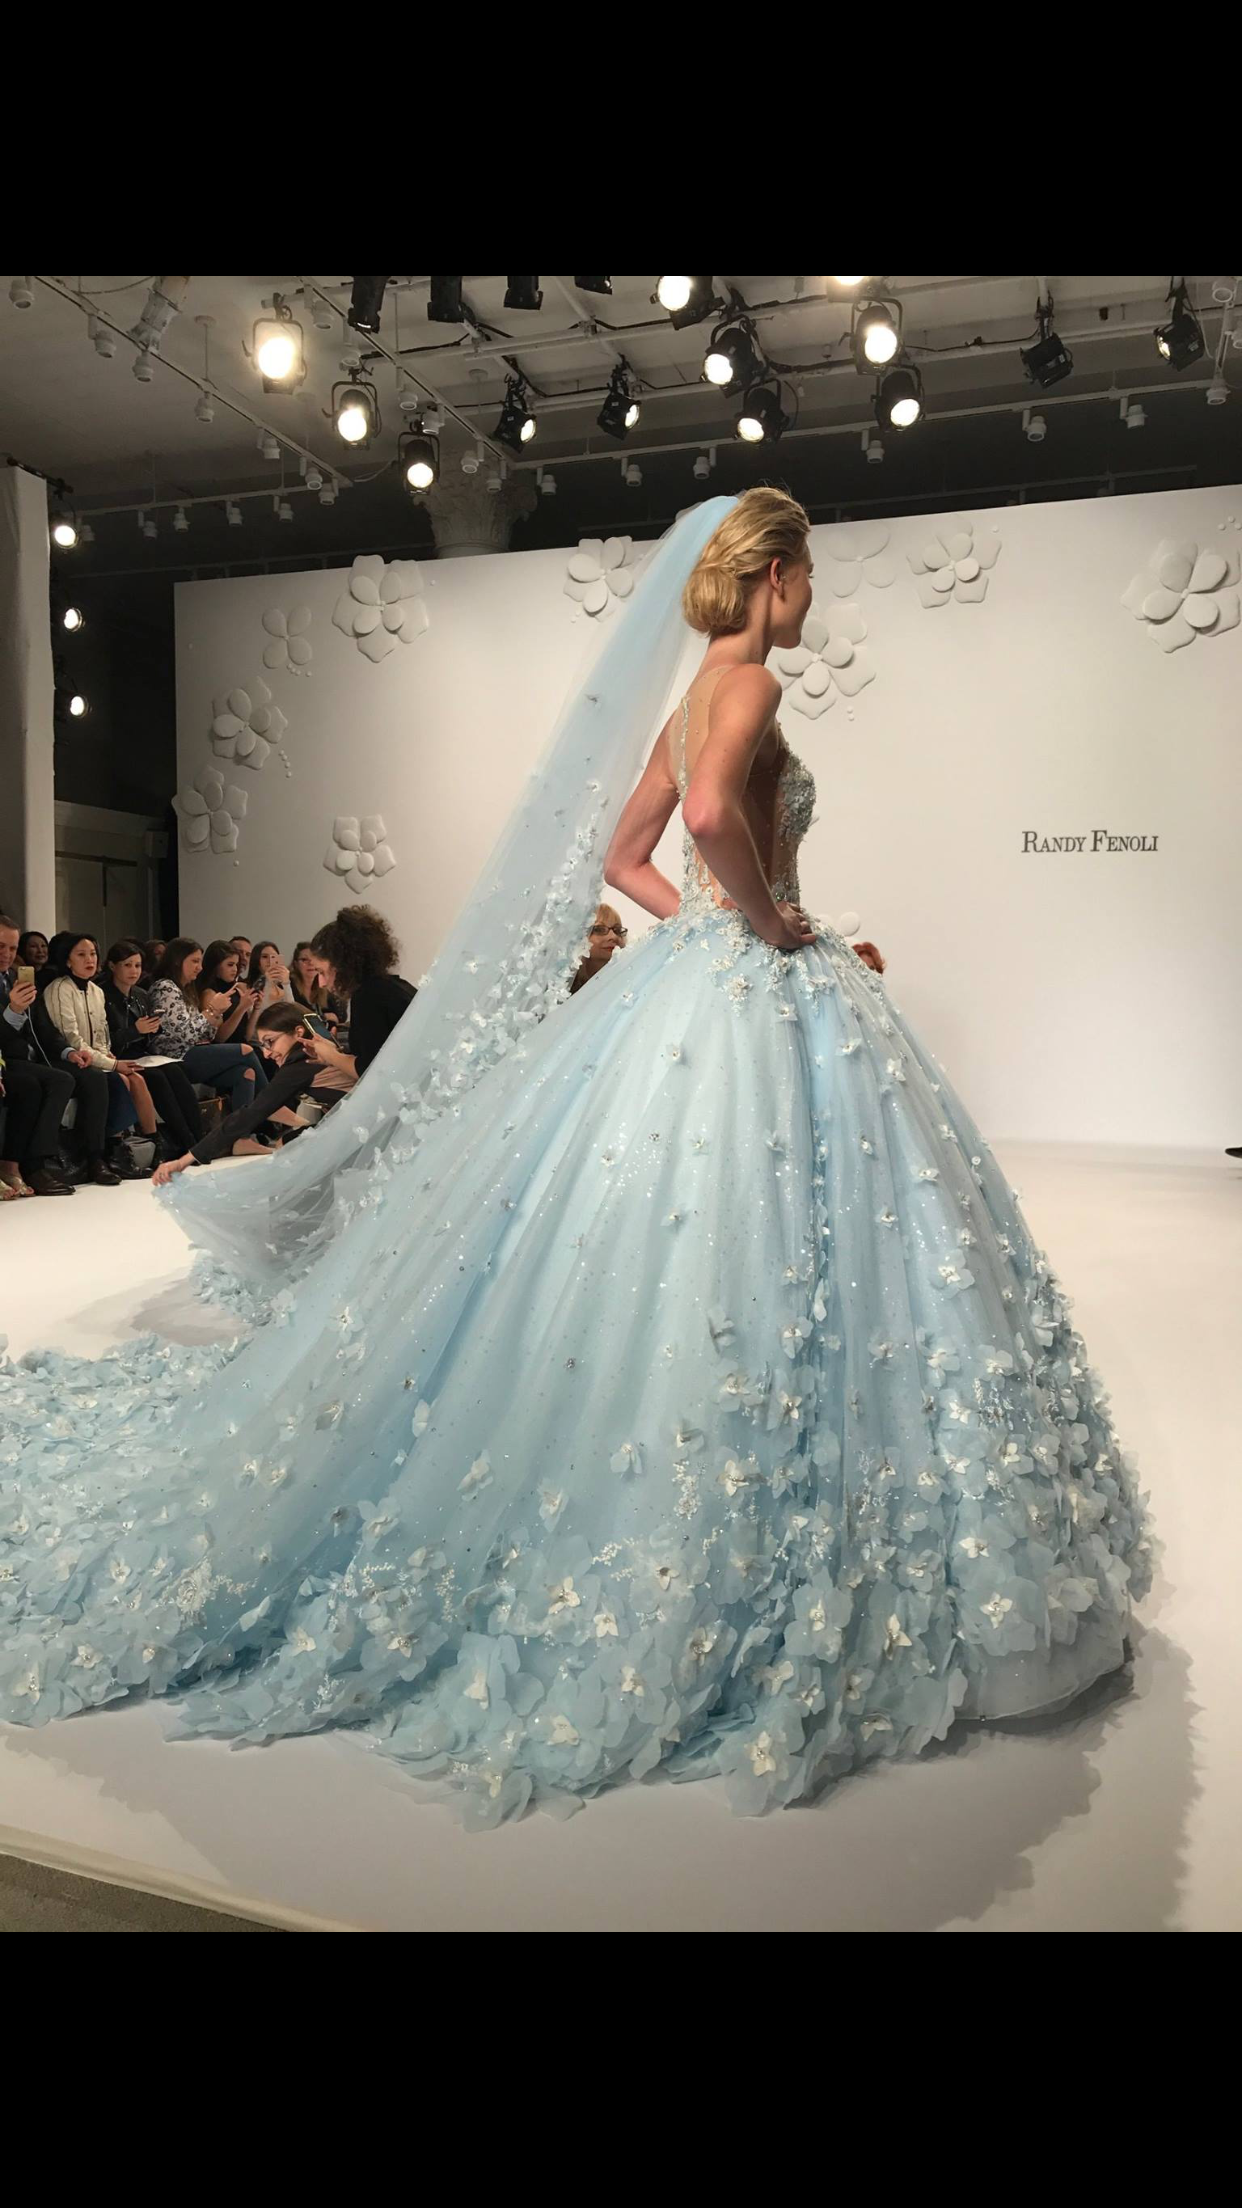 Randy Fenoli wedding dress!! IM IN LOVE! | Fashion | Pinterest ...